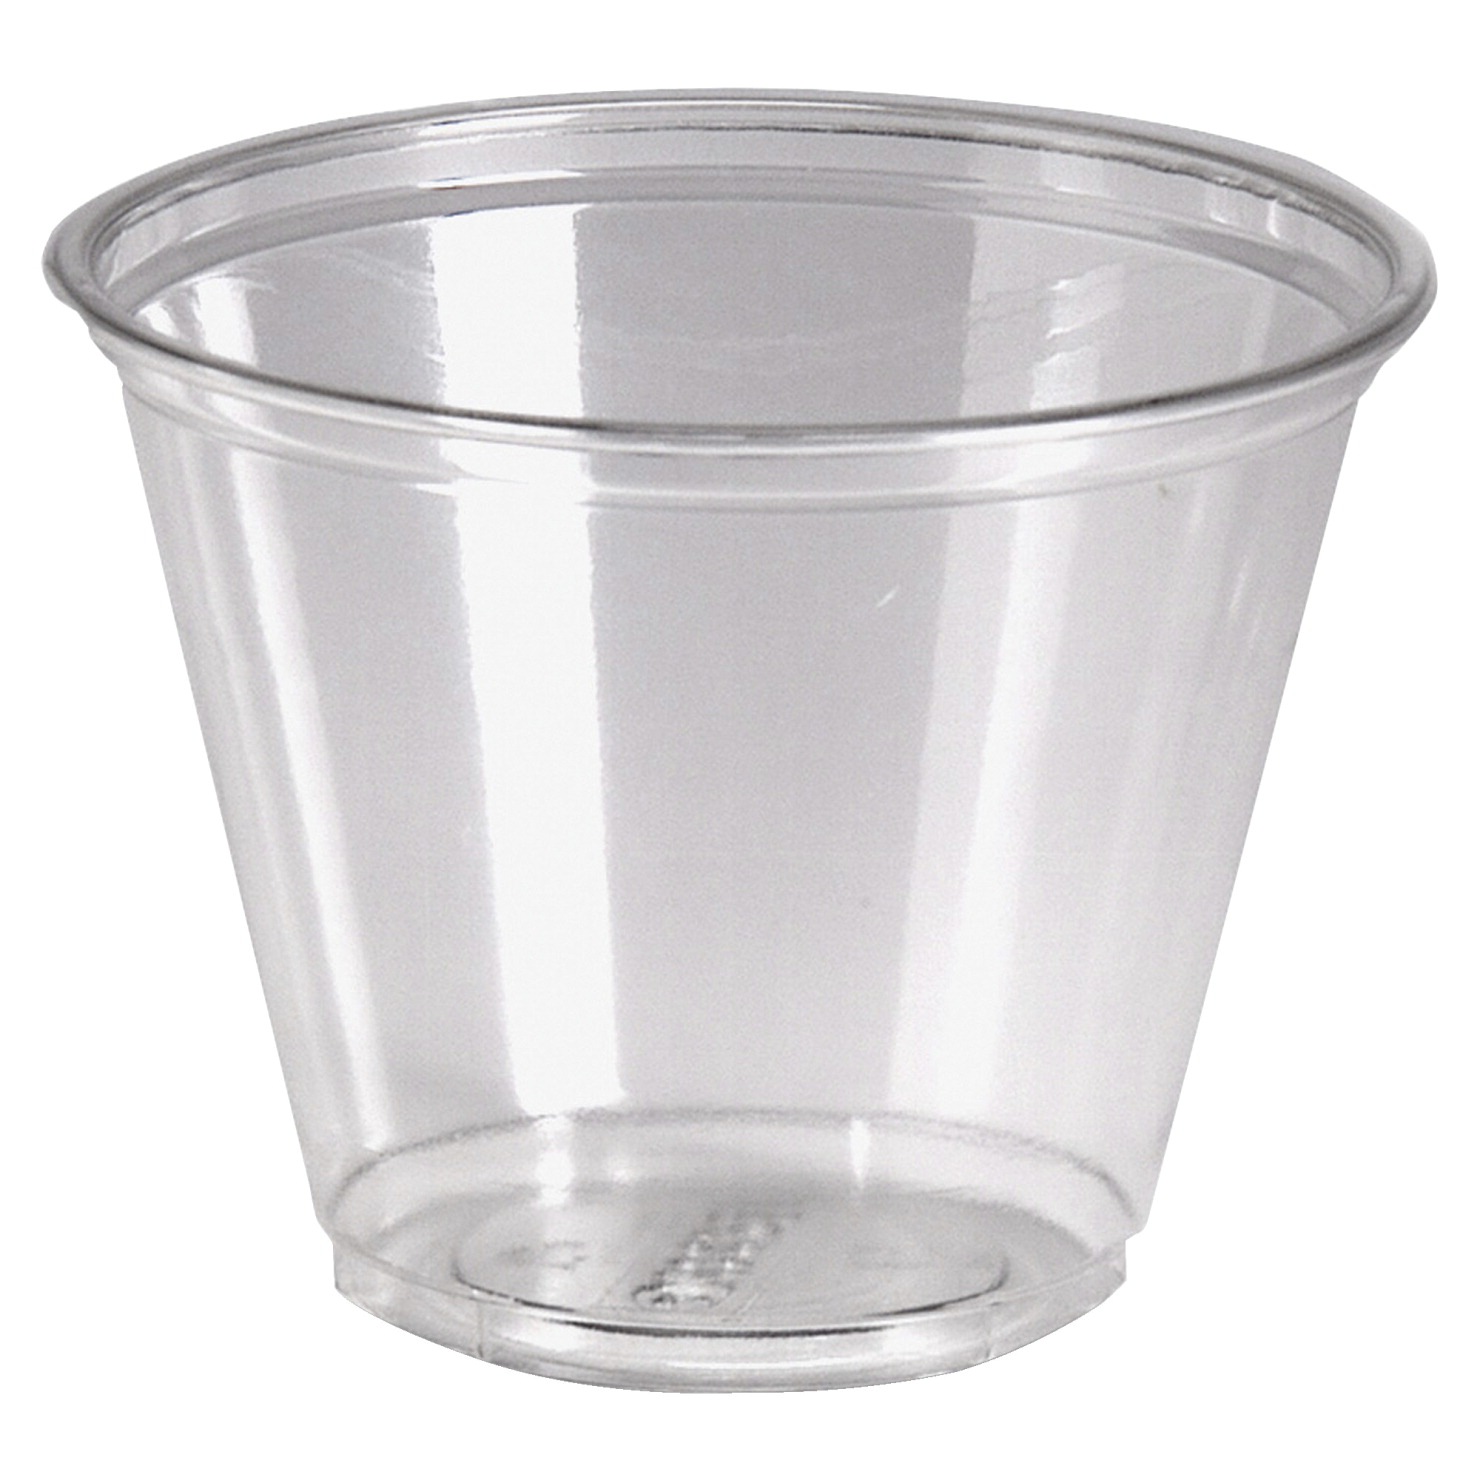 Top Clear Plastic Cup : Cold drink cup school specialty marketplace